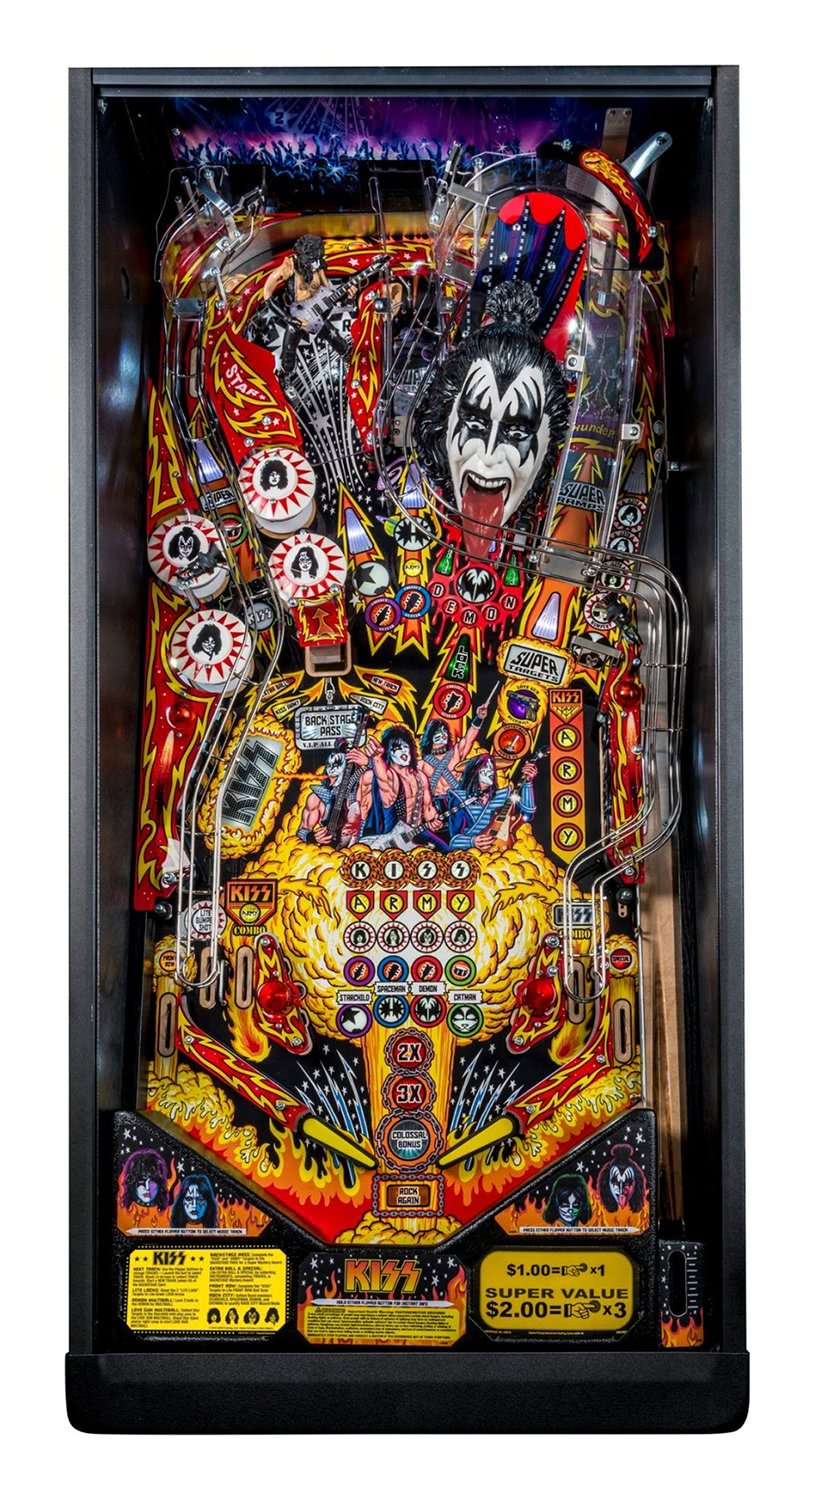 Stern Kiss Pro Pinball Machine Liberty Games